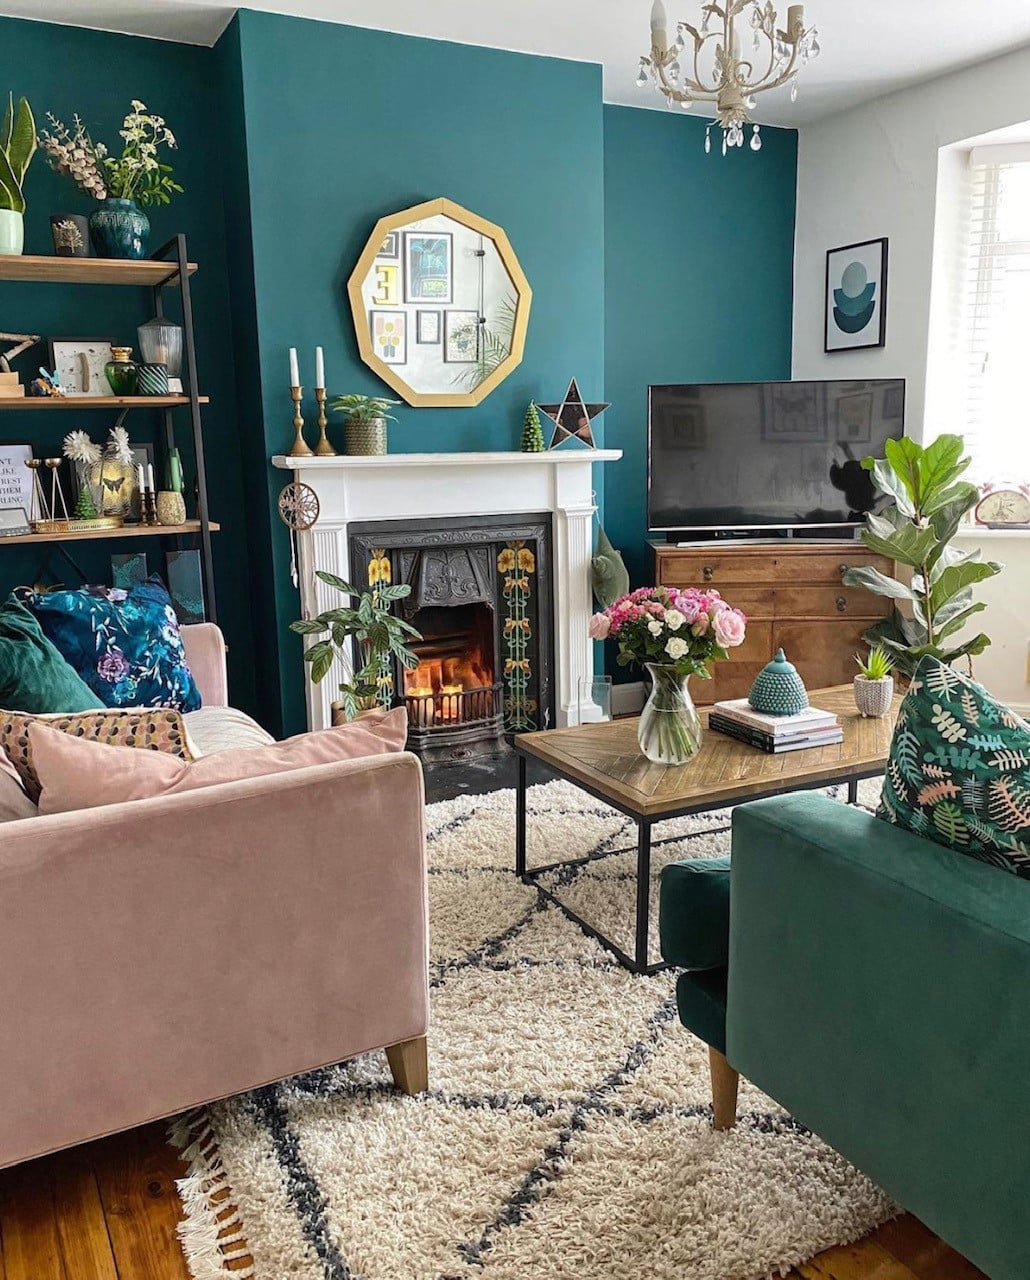 Blue jade wall in the living room with green velvet and pink velvet sofas, industrial style coffee table, fireplace and large white rug